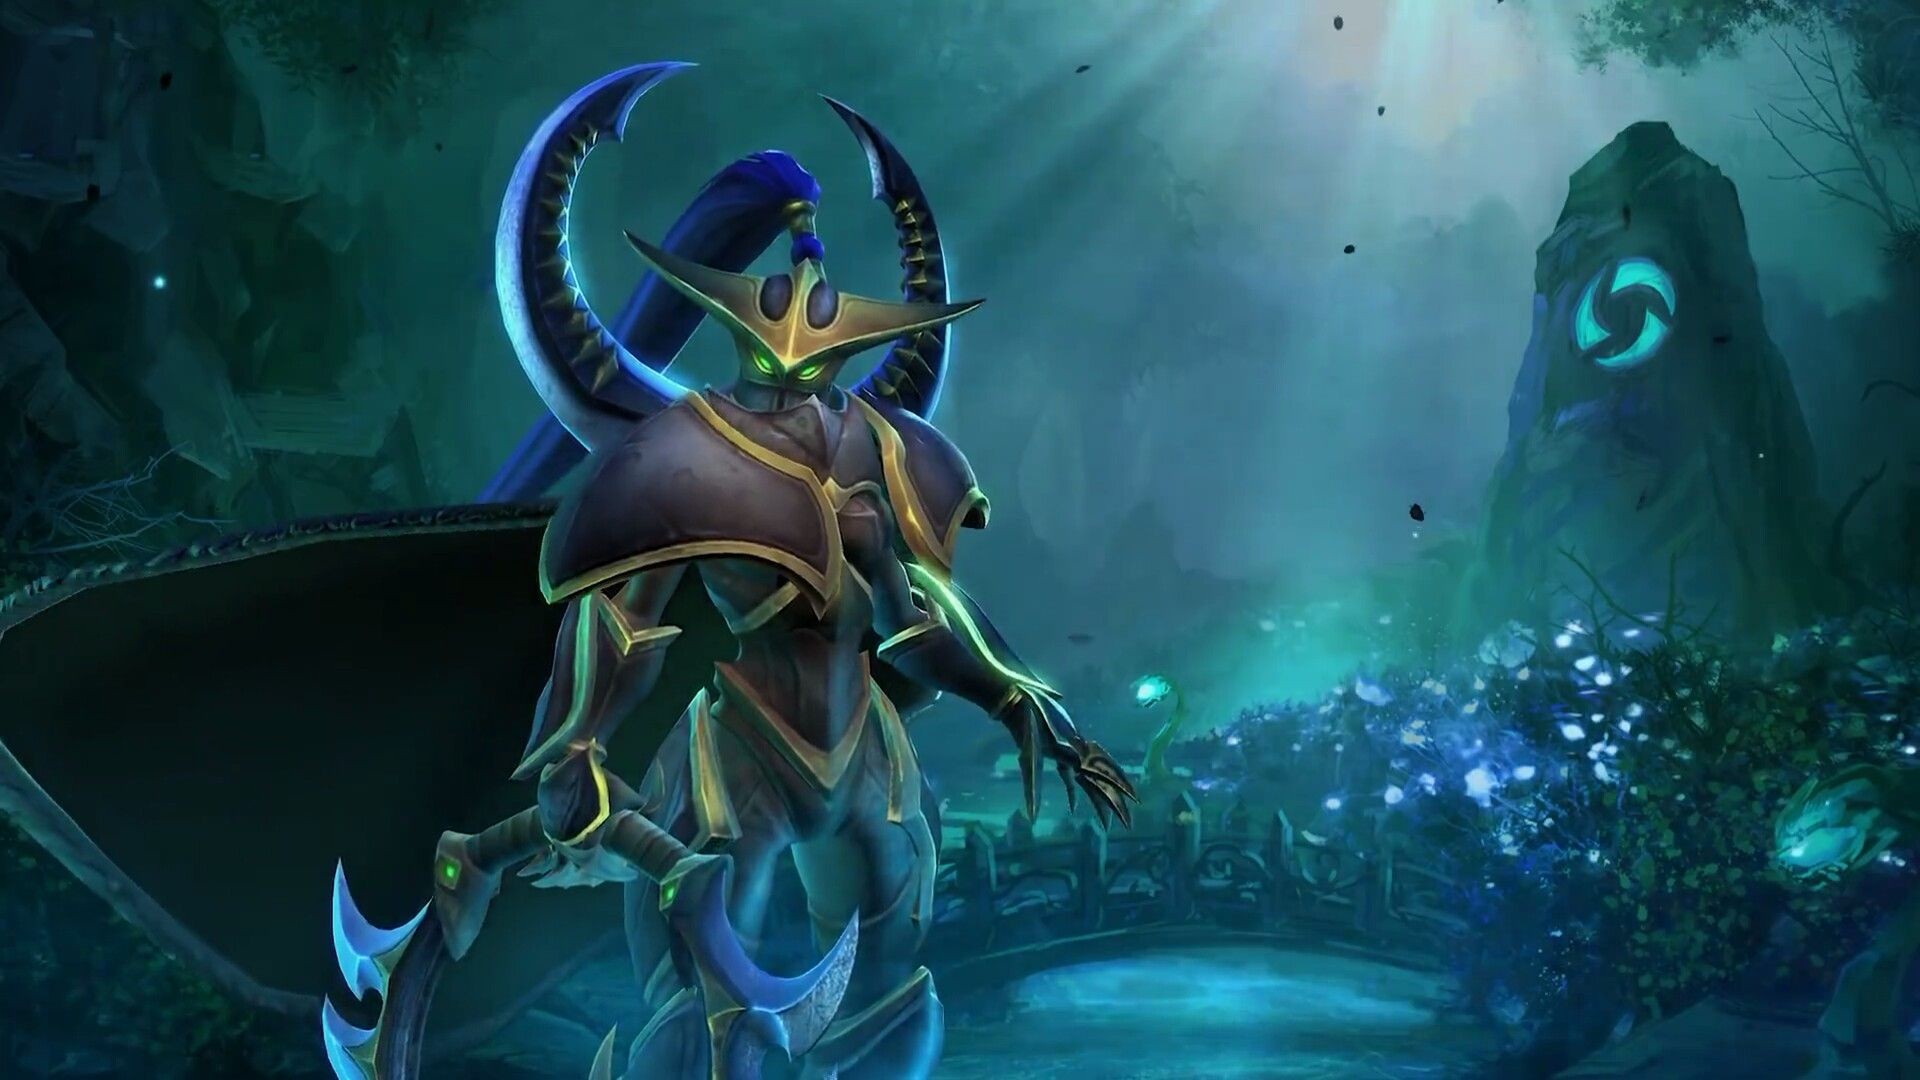 Heroes Of Storms Maiev Shadowsong Heroes Of The Storm Maiev Shadowsong Night Elf Log in or sign up in seconds.| here's a very cool reimagining of the warden maiev shadowsong. heroes of storms maiev shadowsong